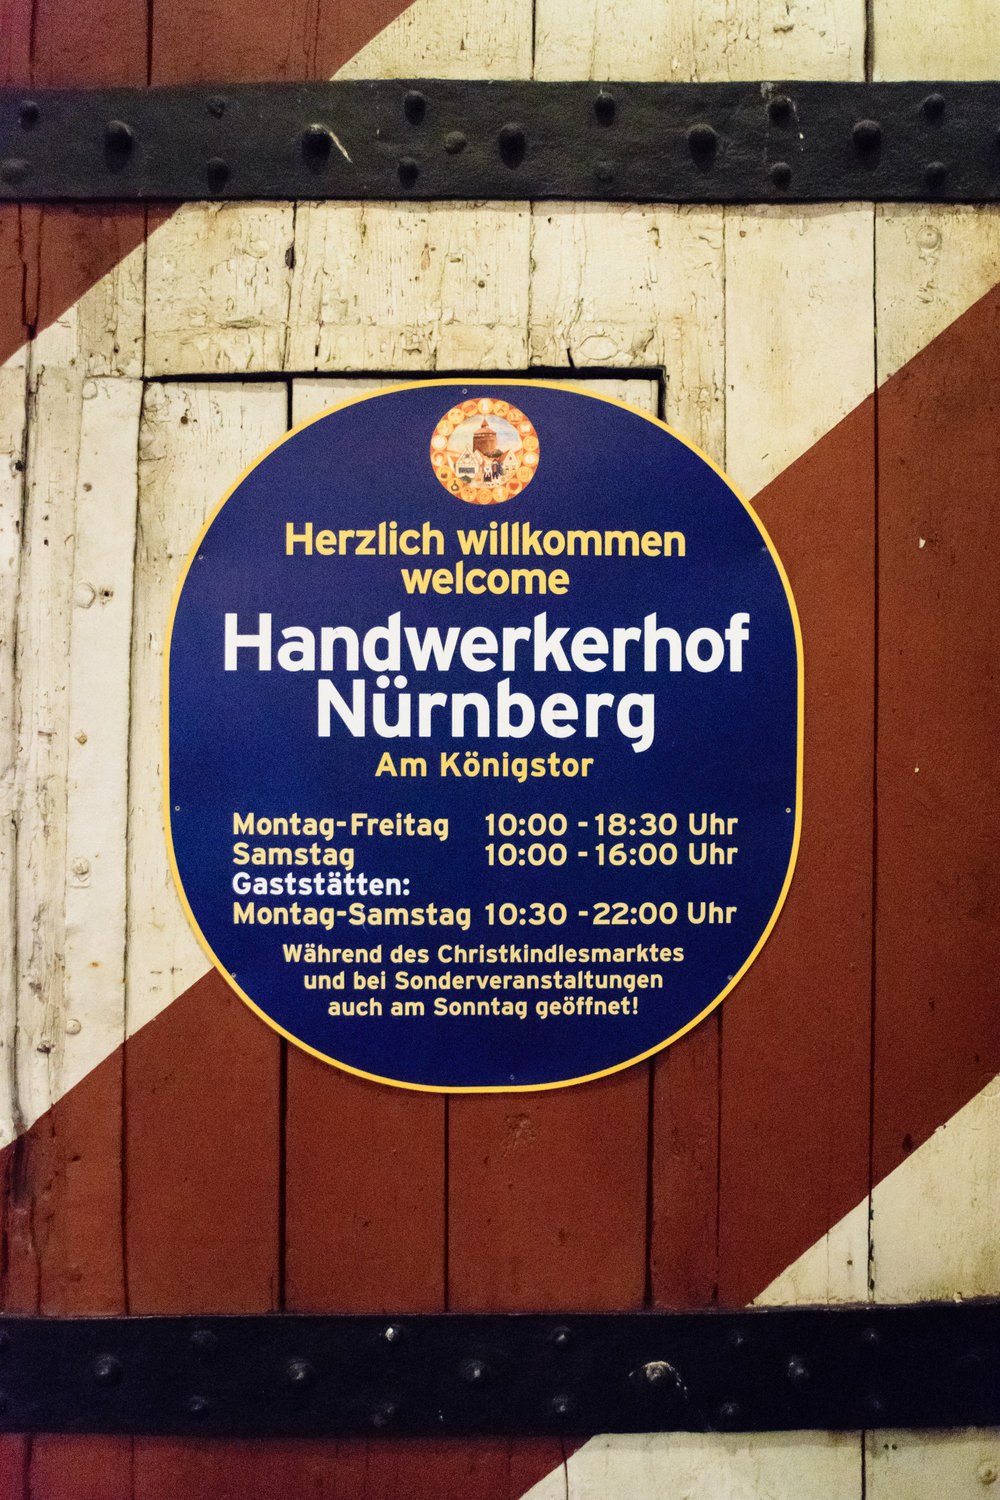 medieval shopping & traditional crafts at Handwerkerhof Nürnberg